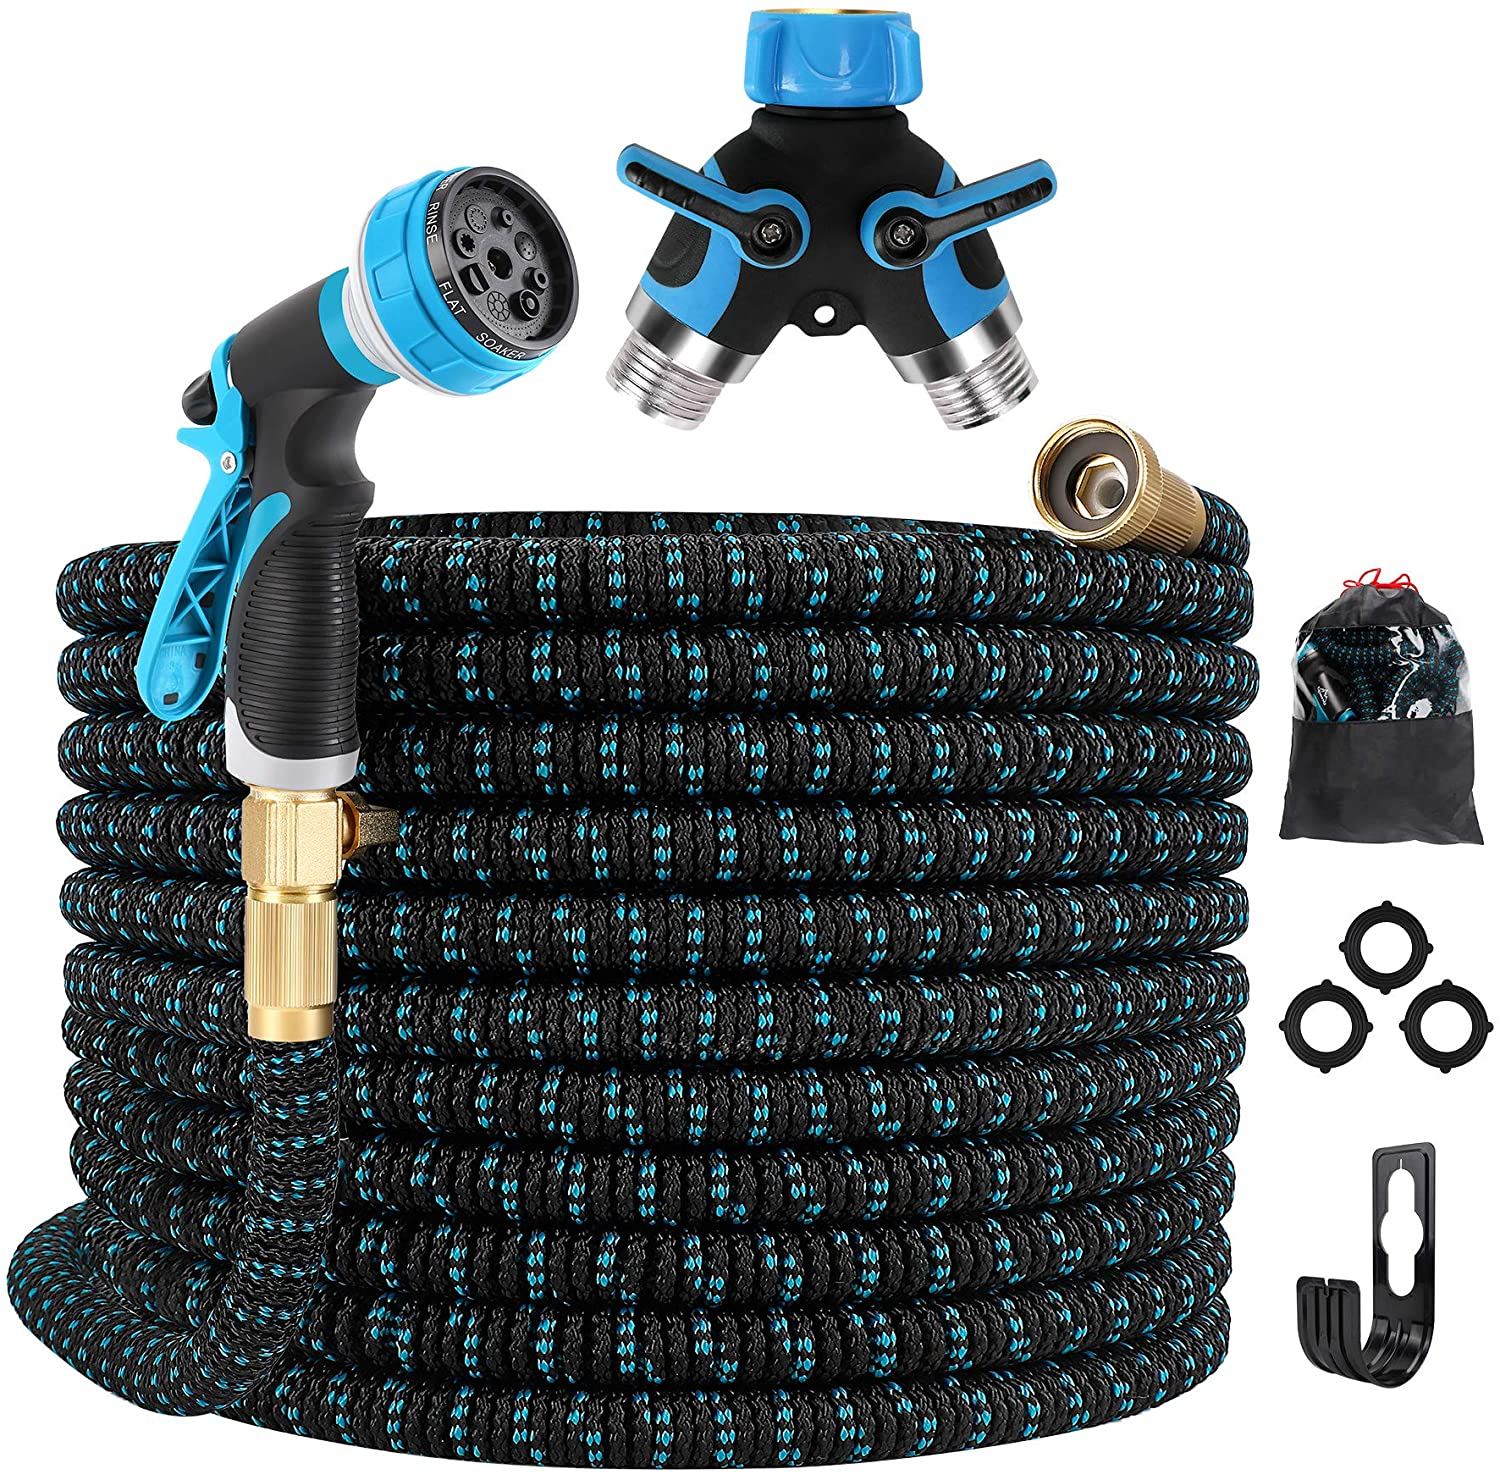 Gpeng 100ft Expandable Garden Hose , Water Hose with 8 Function Nozzle, Durable 3-Layers Latex Core with 3/4